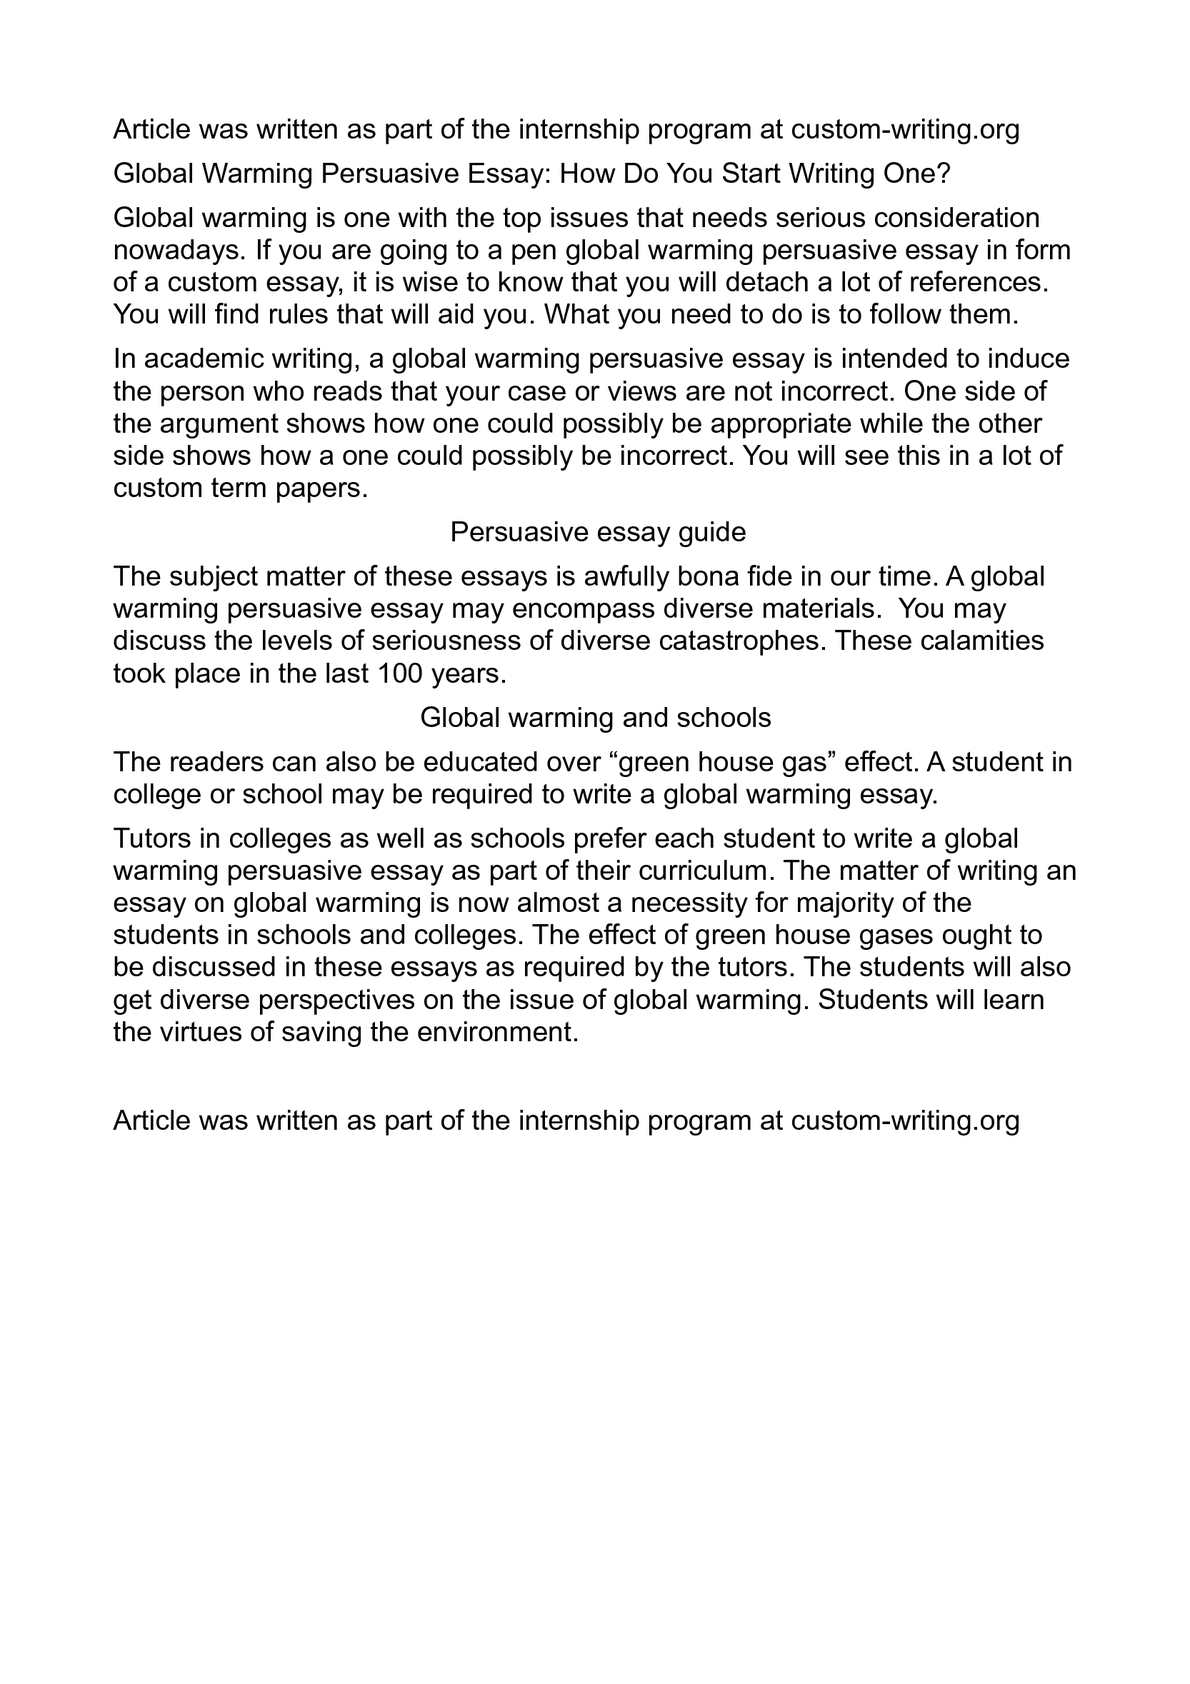 global warming persuasive essay equality essay calamatilde131acirccopyo global warming persuasive essay how do you start p1 000635969050517b23134